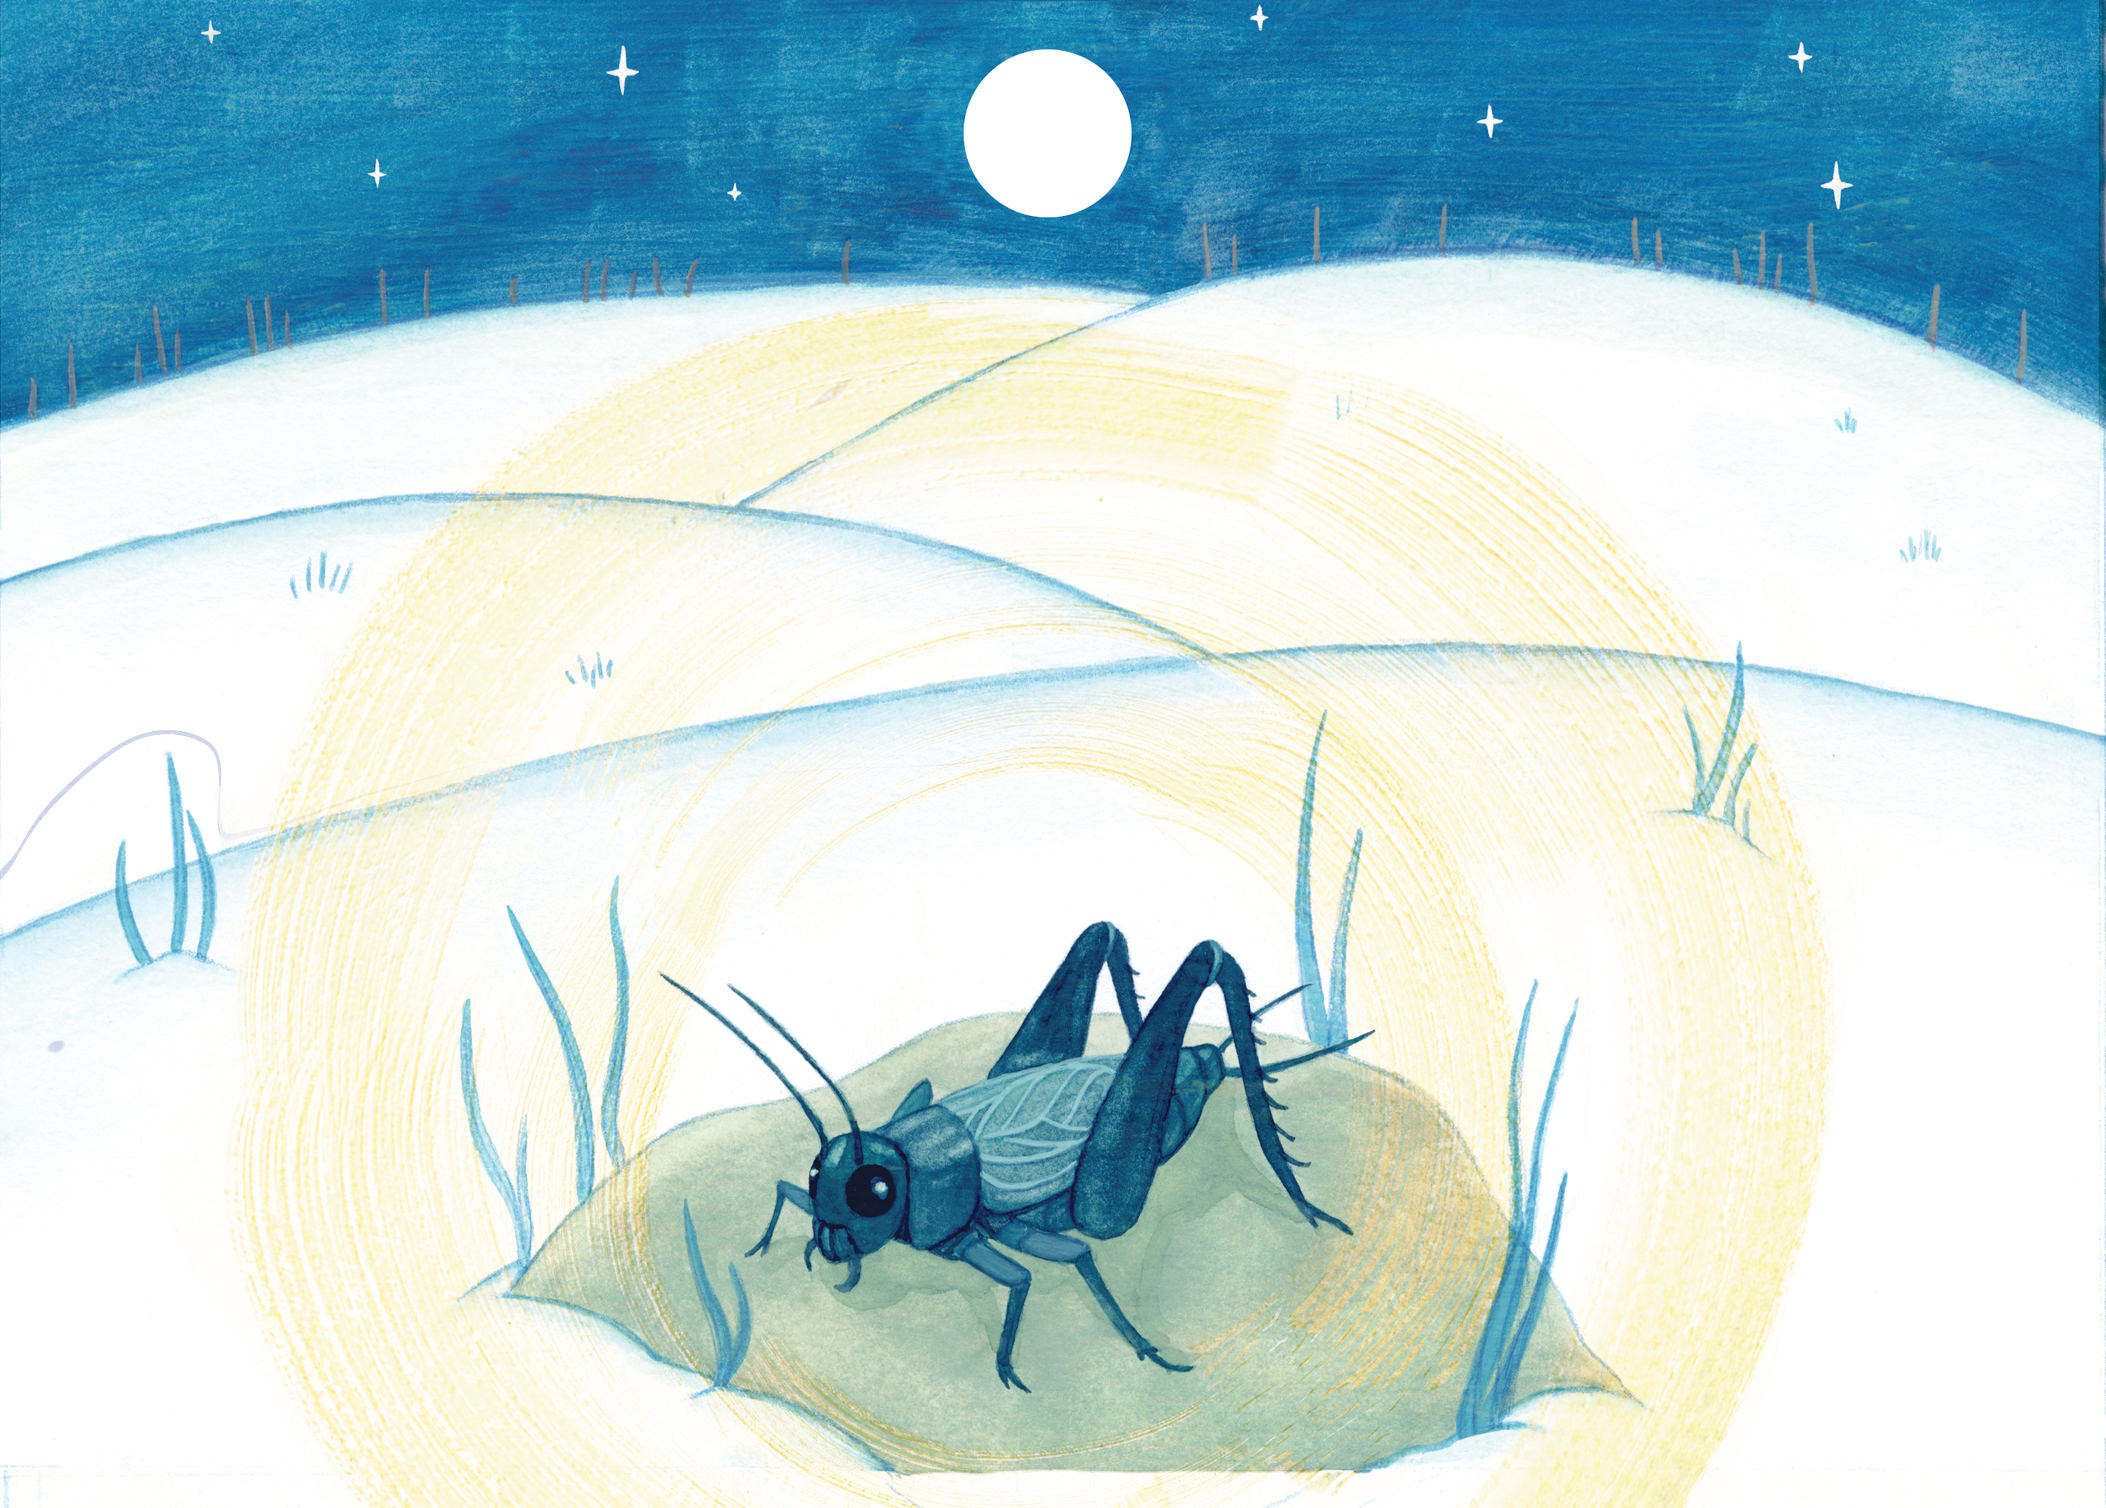 ON THE GRASSHOPPER AND CRICKET pg 2